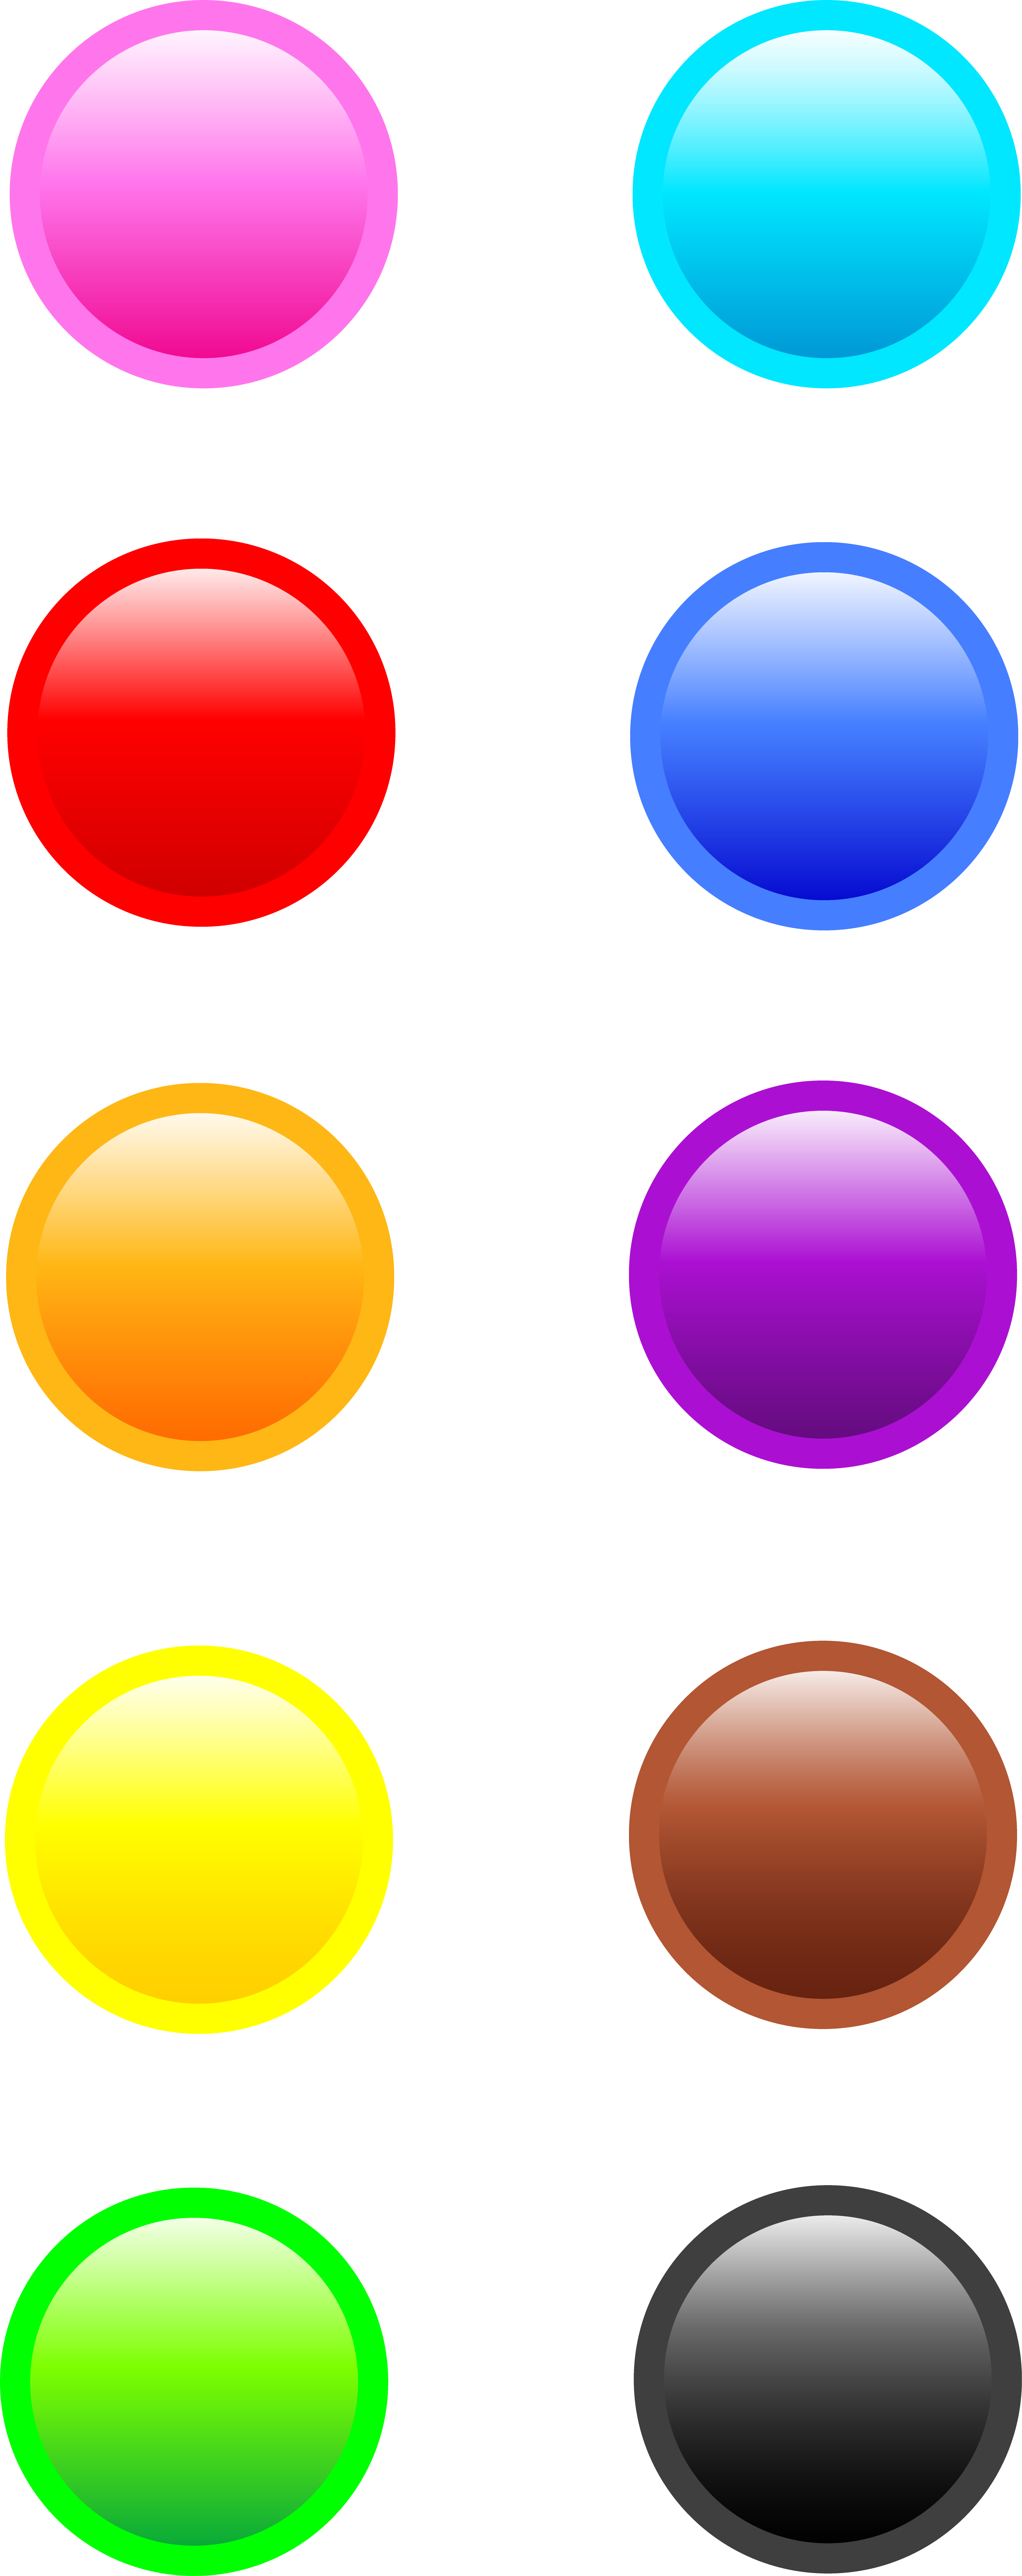 Button clipart website png Round Clip Buttons Colorful Round